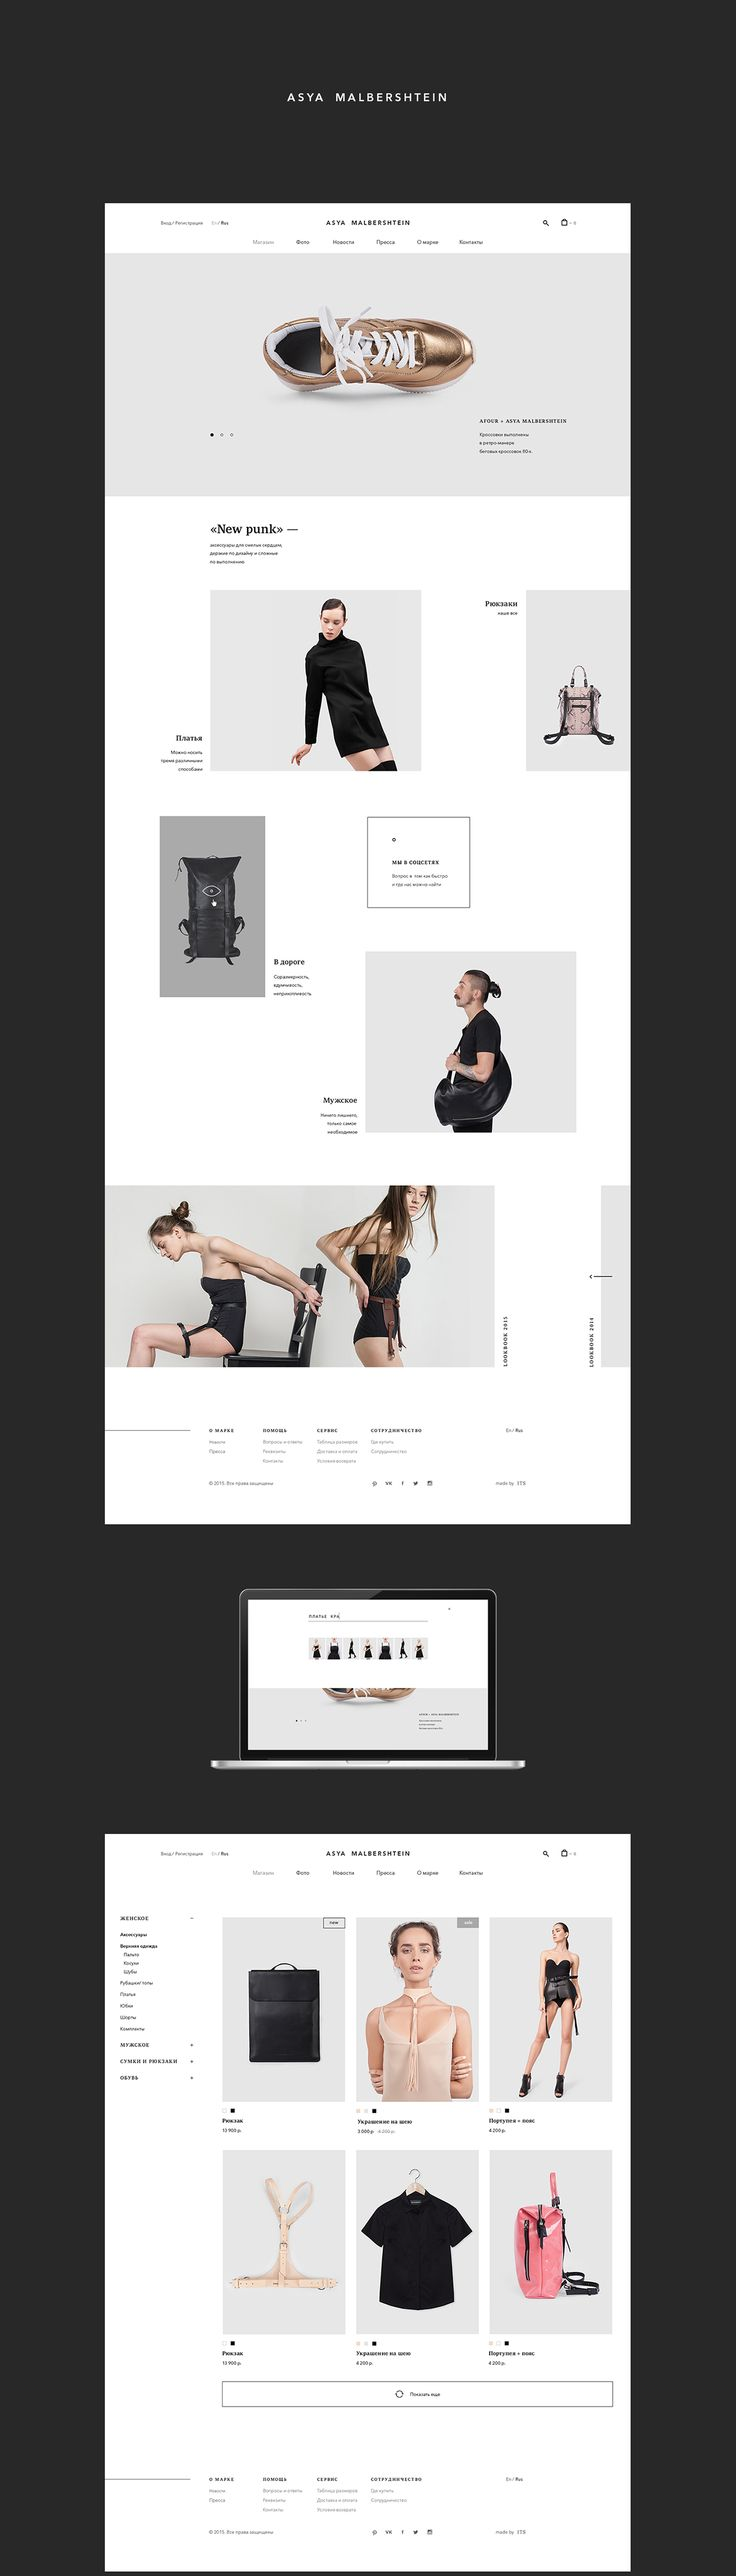 Asya Malbershtein on Web Design Served #web #webdesign #design #layout #grid…